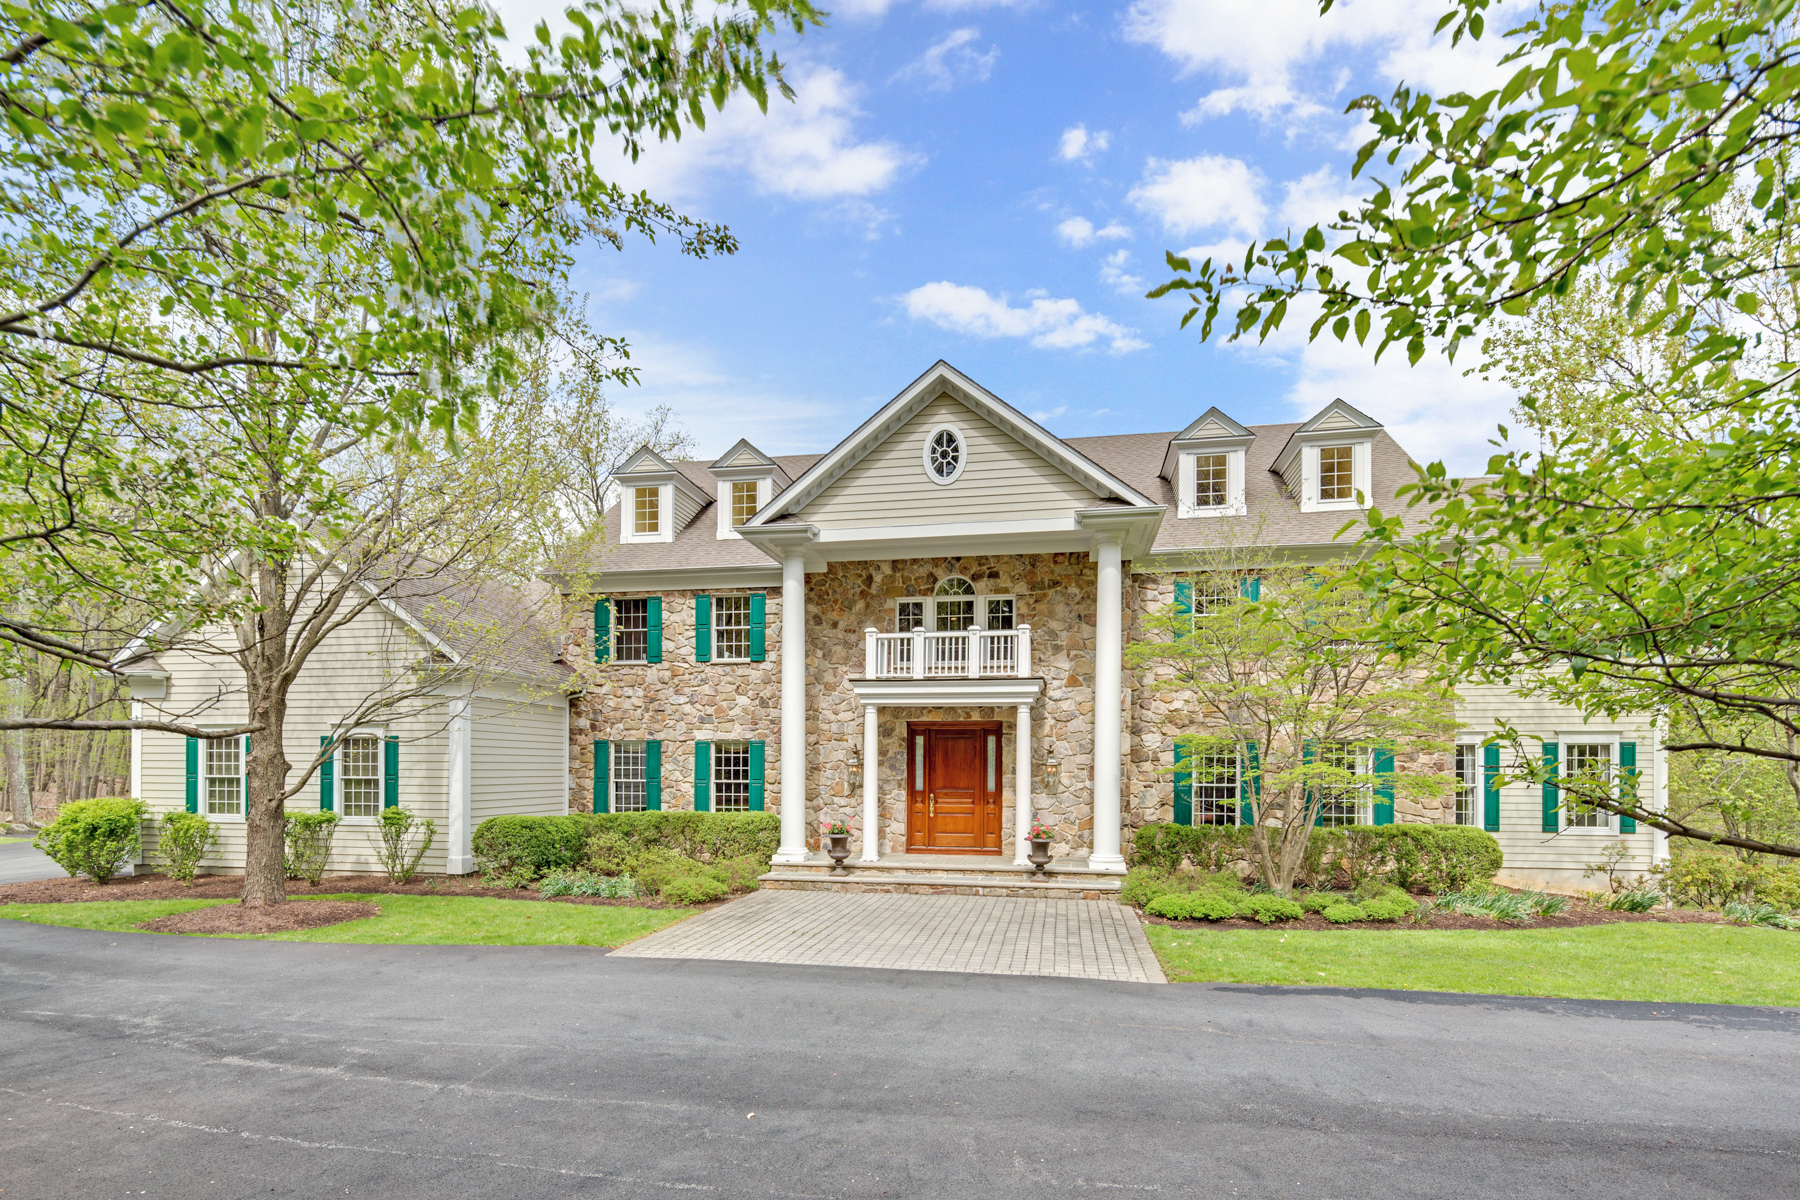 Single Family Home for Sale at Elegant Custom Colonial 51 Ravine Lake Road Bernardsville, New Jersey 07924 United States